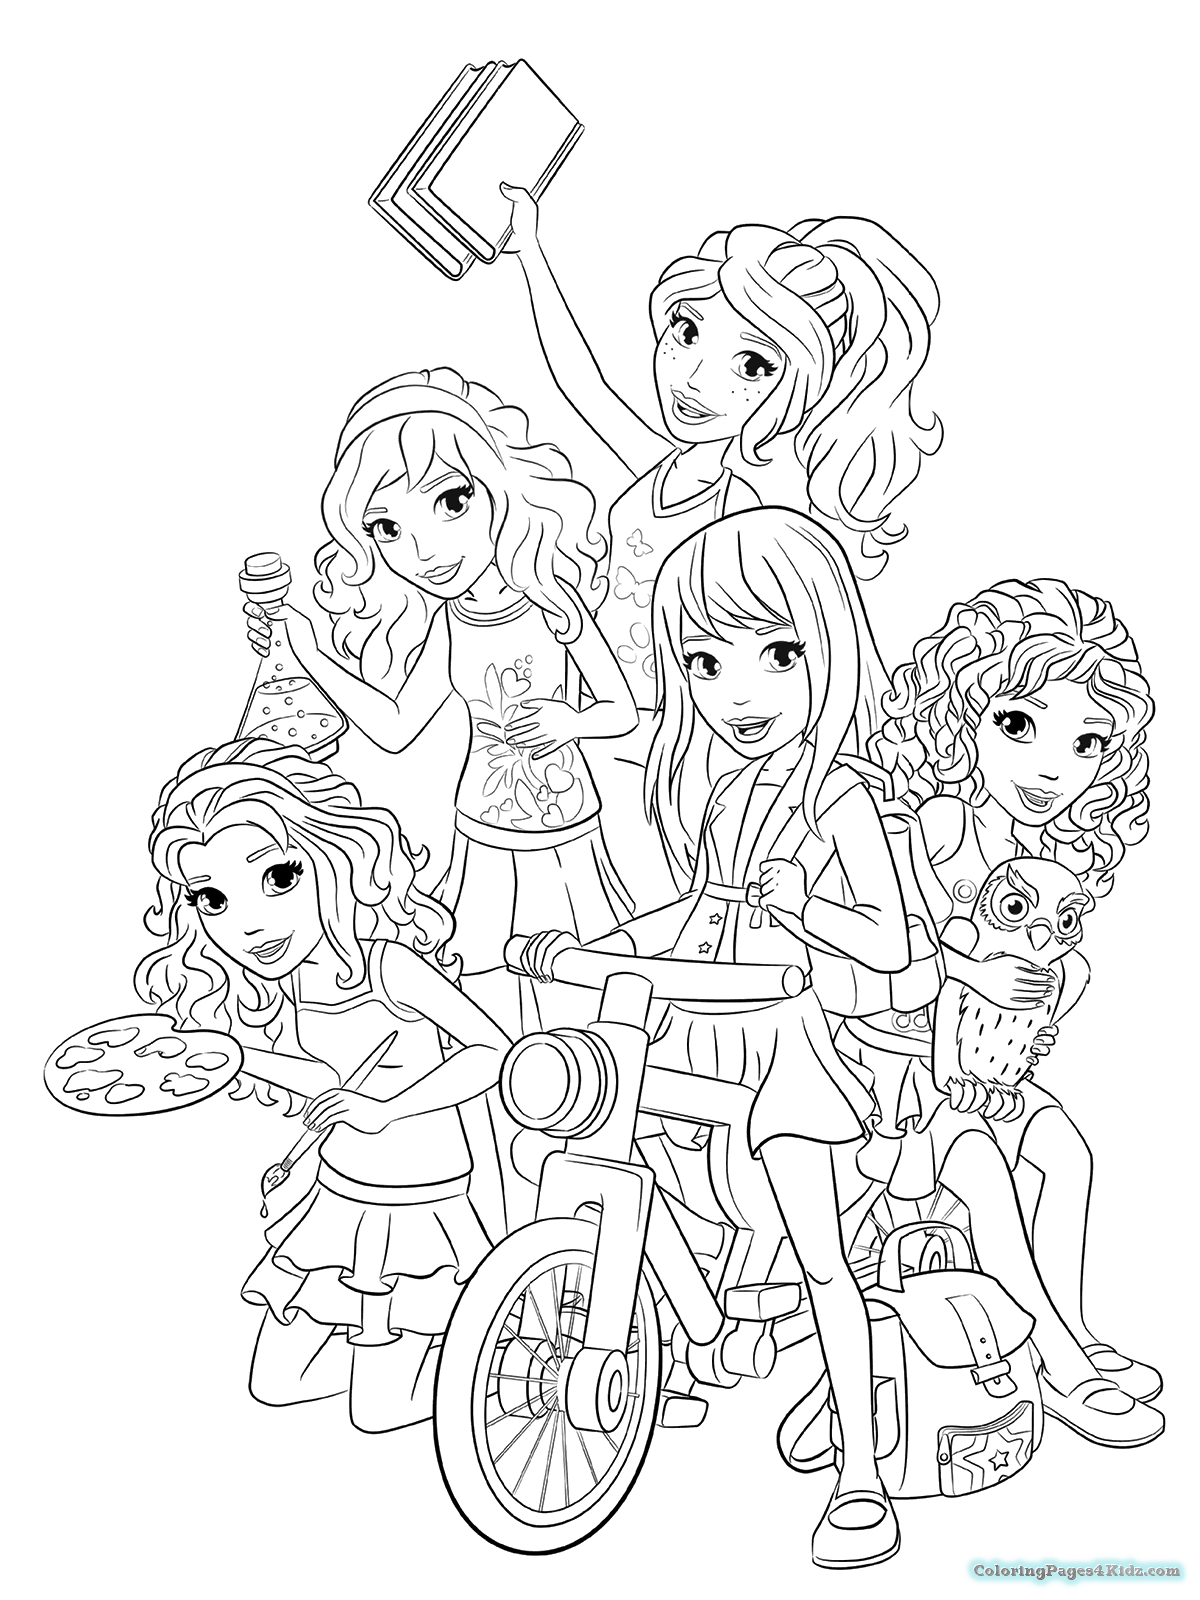 Lego Friends Drawing at GetDrawings.com | Free for personal use Lego ...